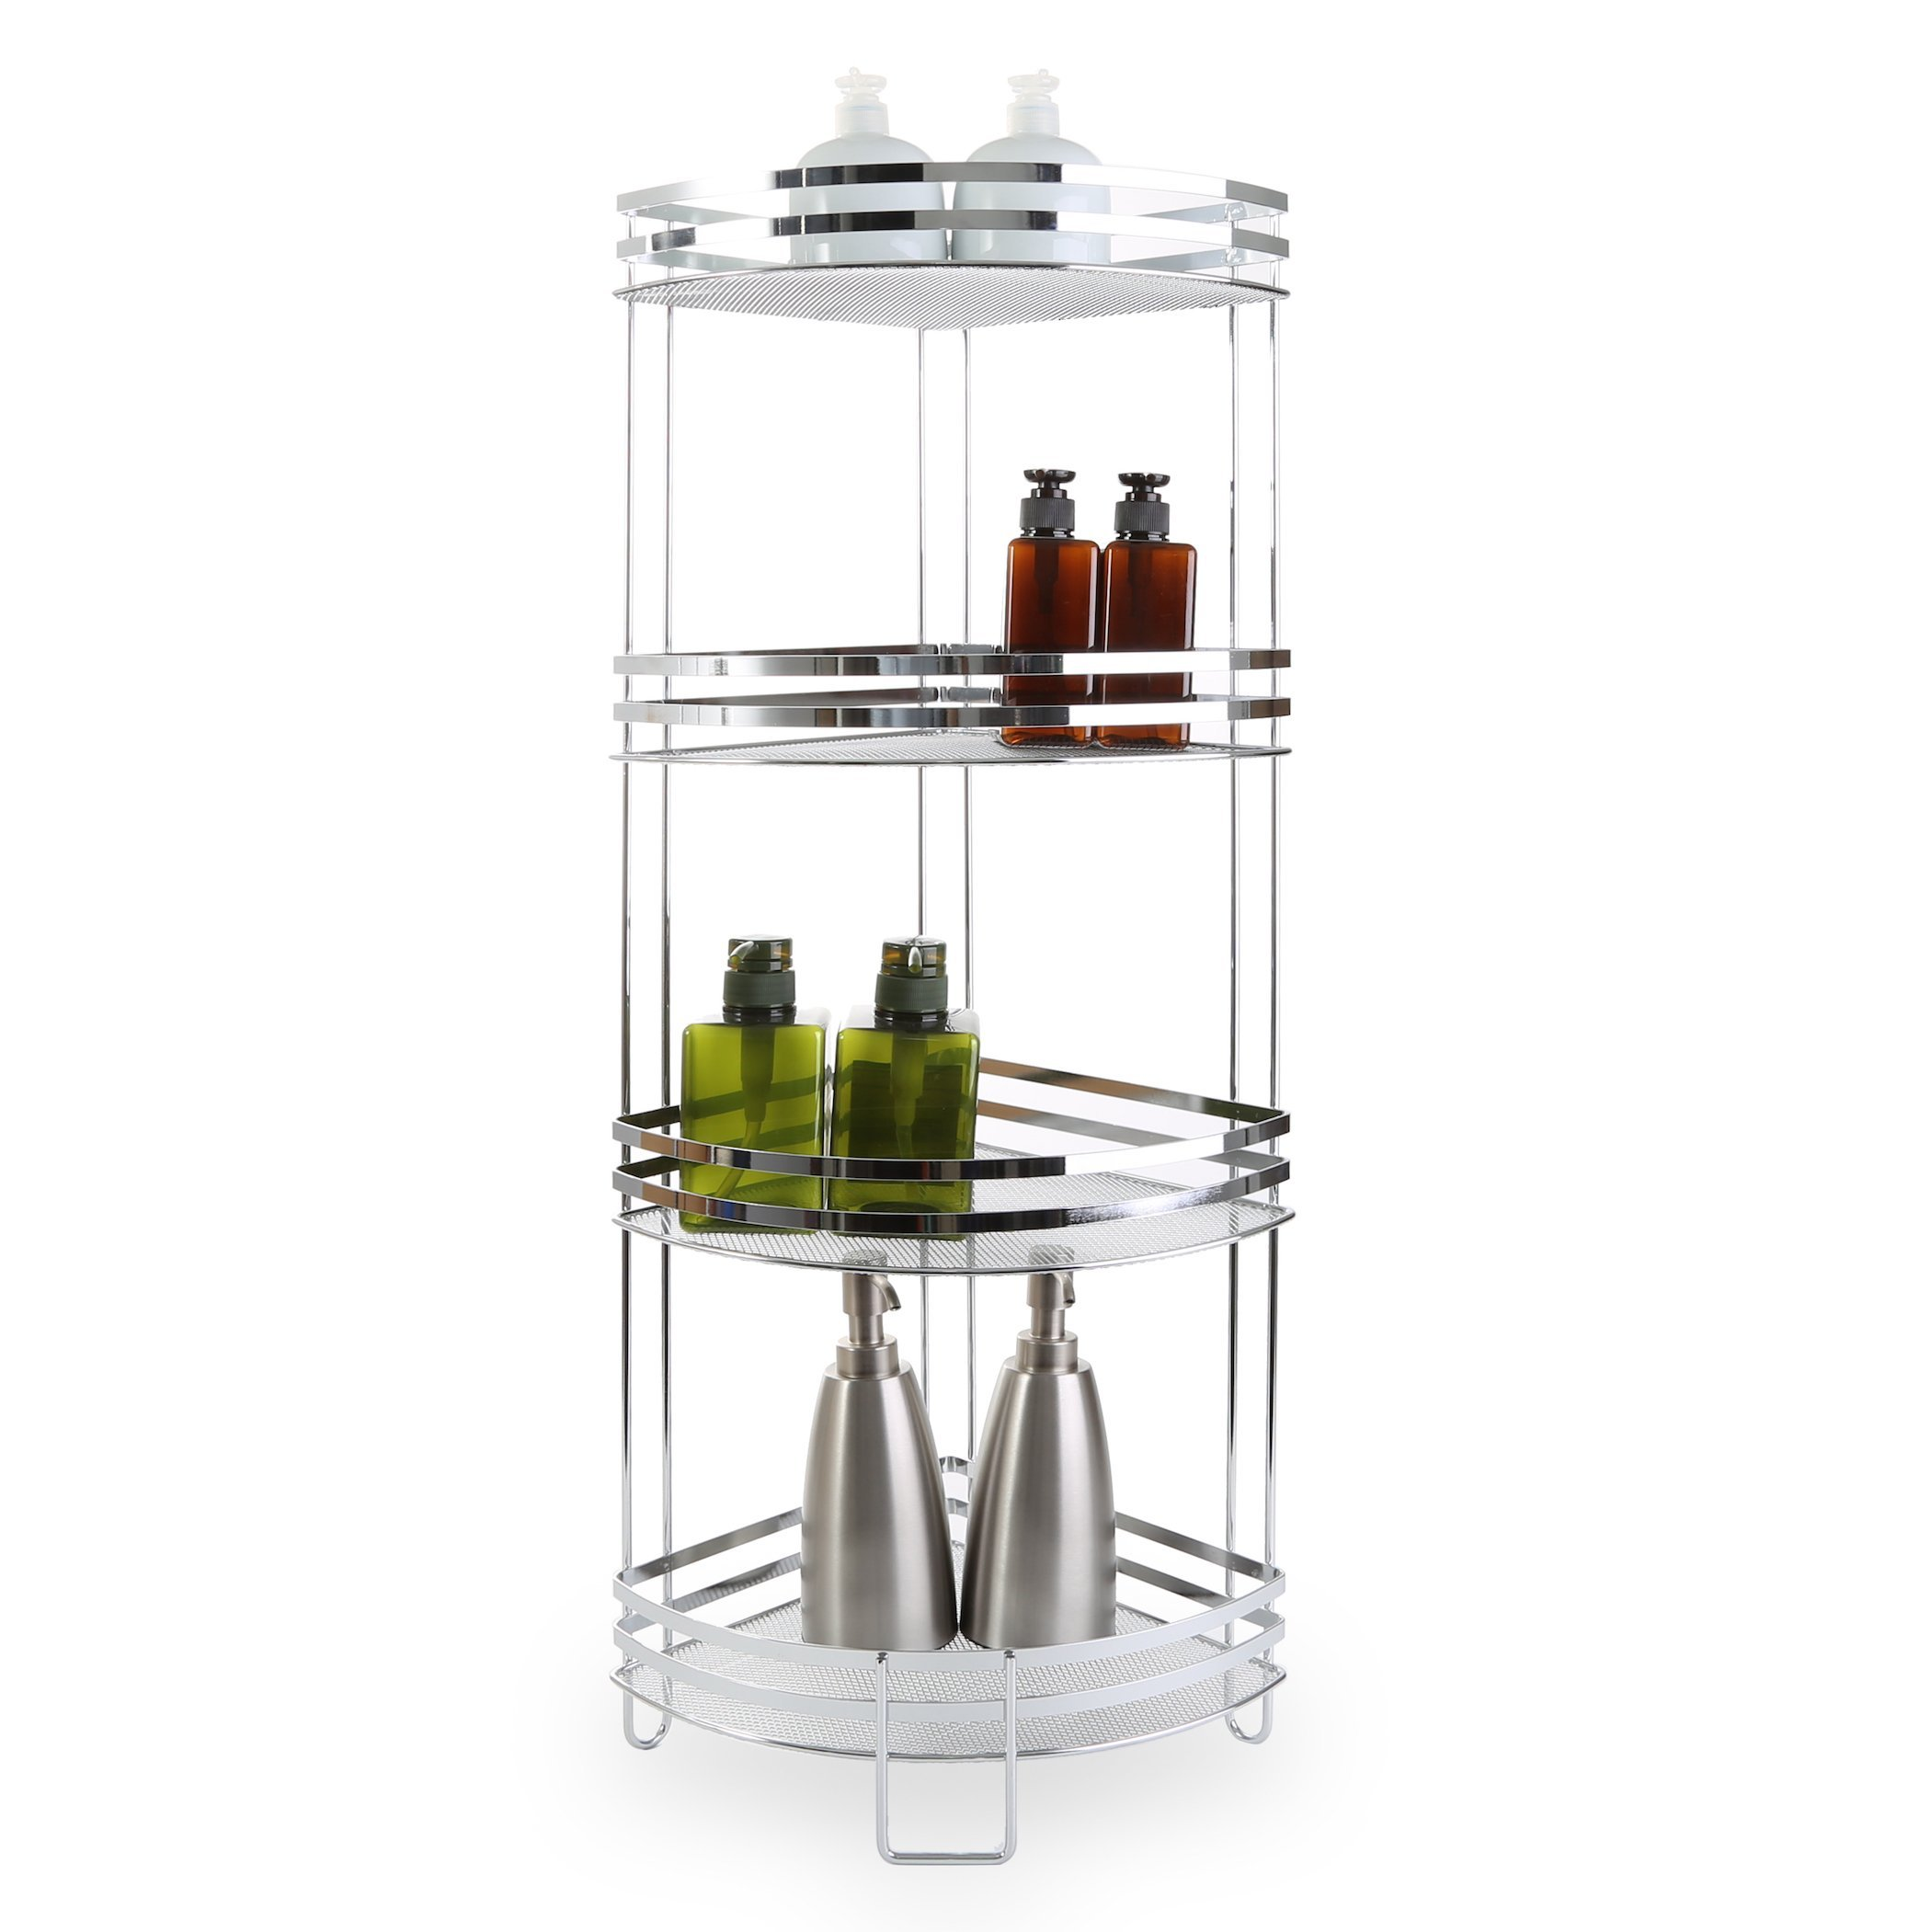 BINO 'Lafayette' Chrome Corner Spa Tower, 4-Tier